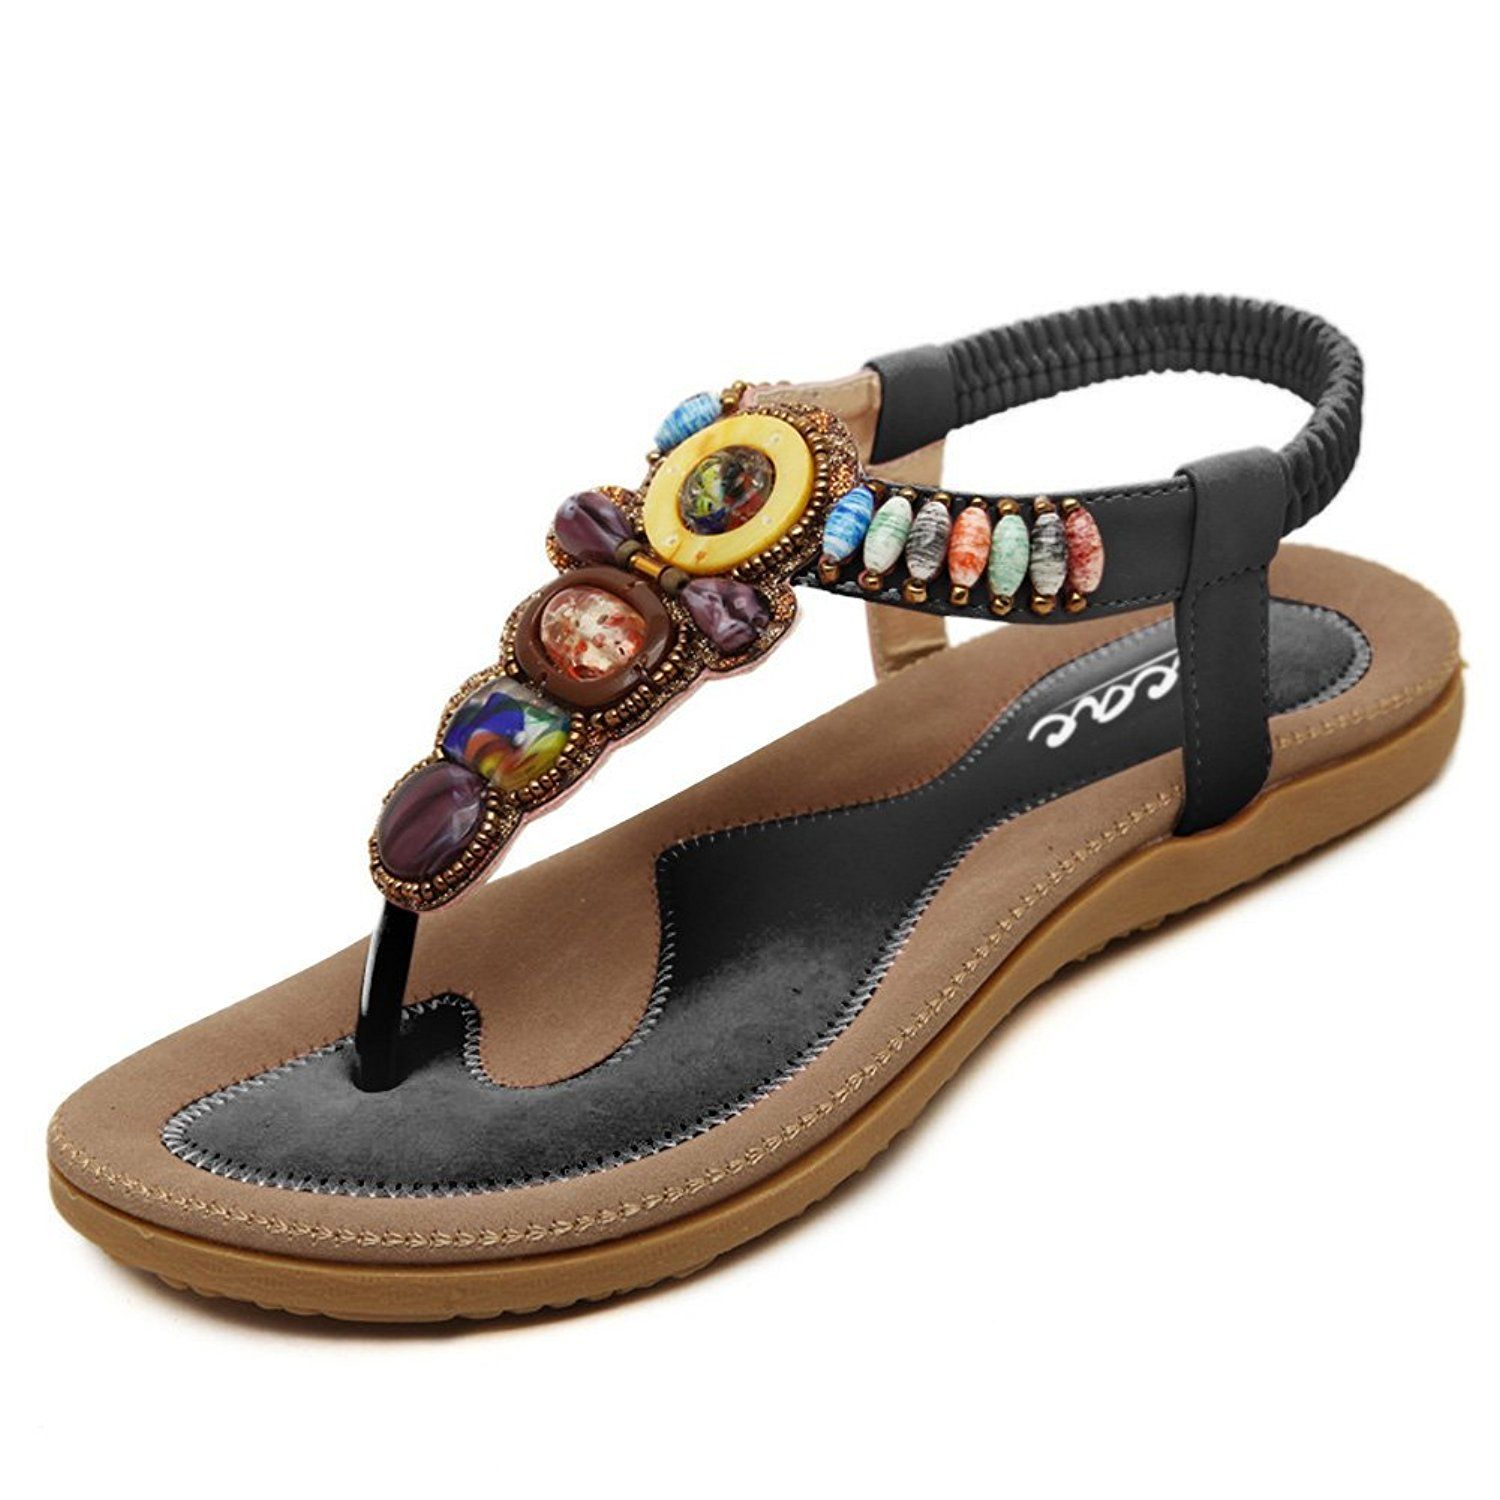 c0c7a6727 Zicac Women s Bohemian Thong Sandal Elastic Back Strap Clip Toe Flats  Sandals With Beads    Find out more about the great product at the image  link.